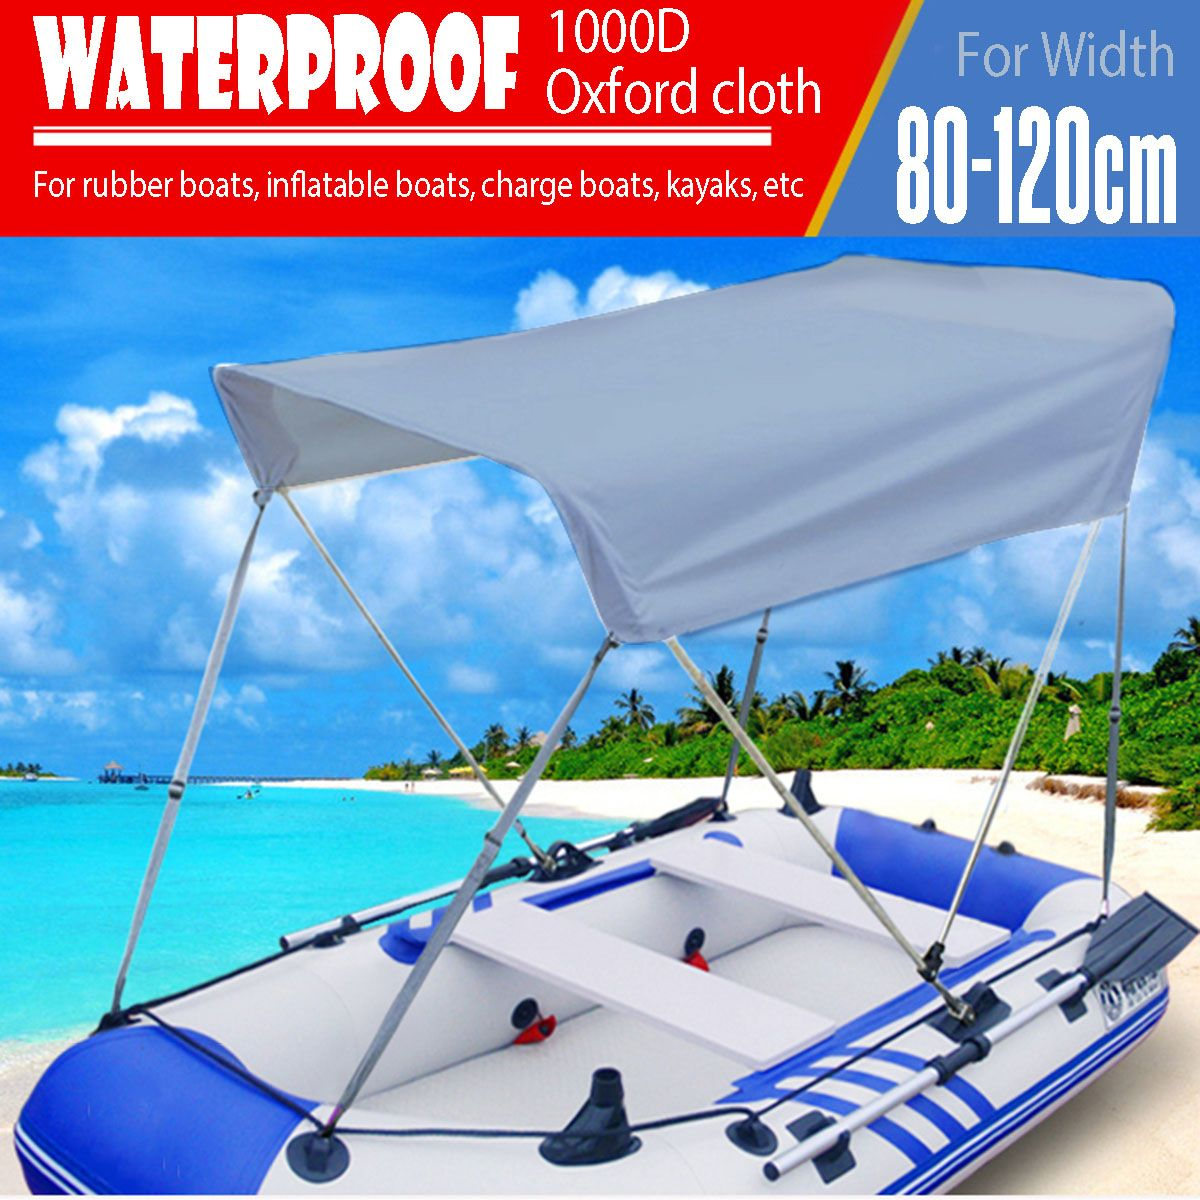 2 Person Inflatable Boat Sun Shelter Sailboat Fish Boat Awning Top Rowing Boats Cover Sunshade Rain Canopy Waterproof Surfing